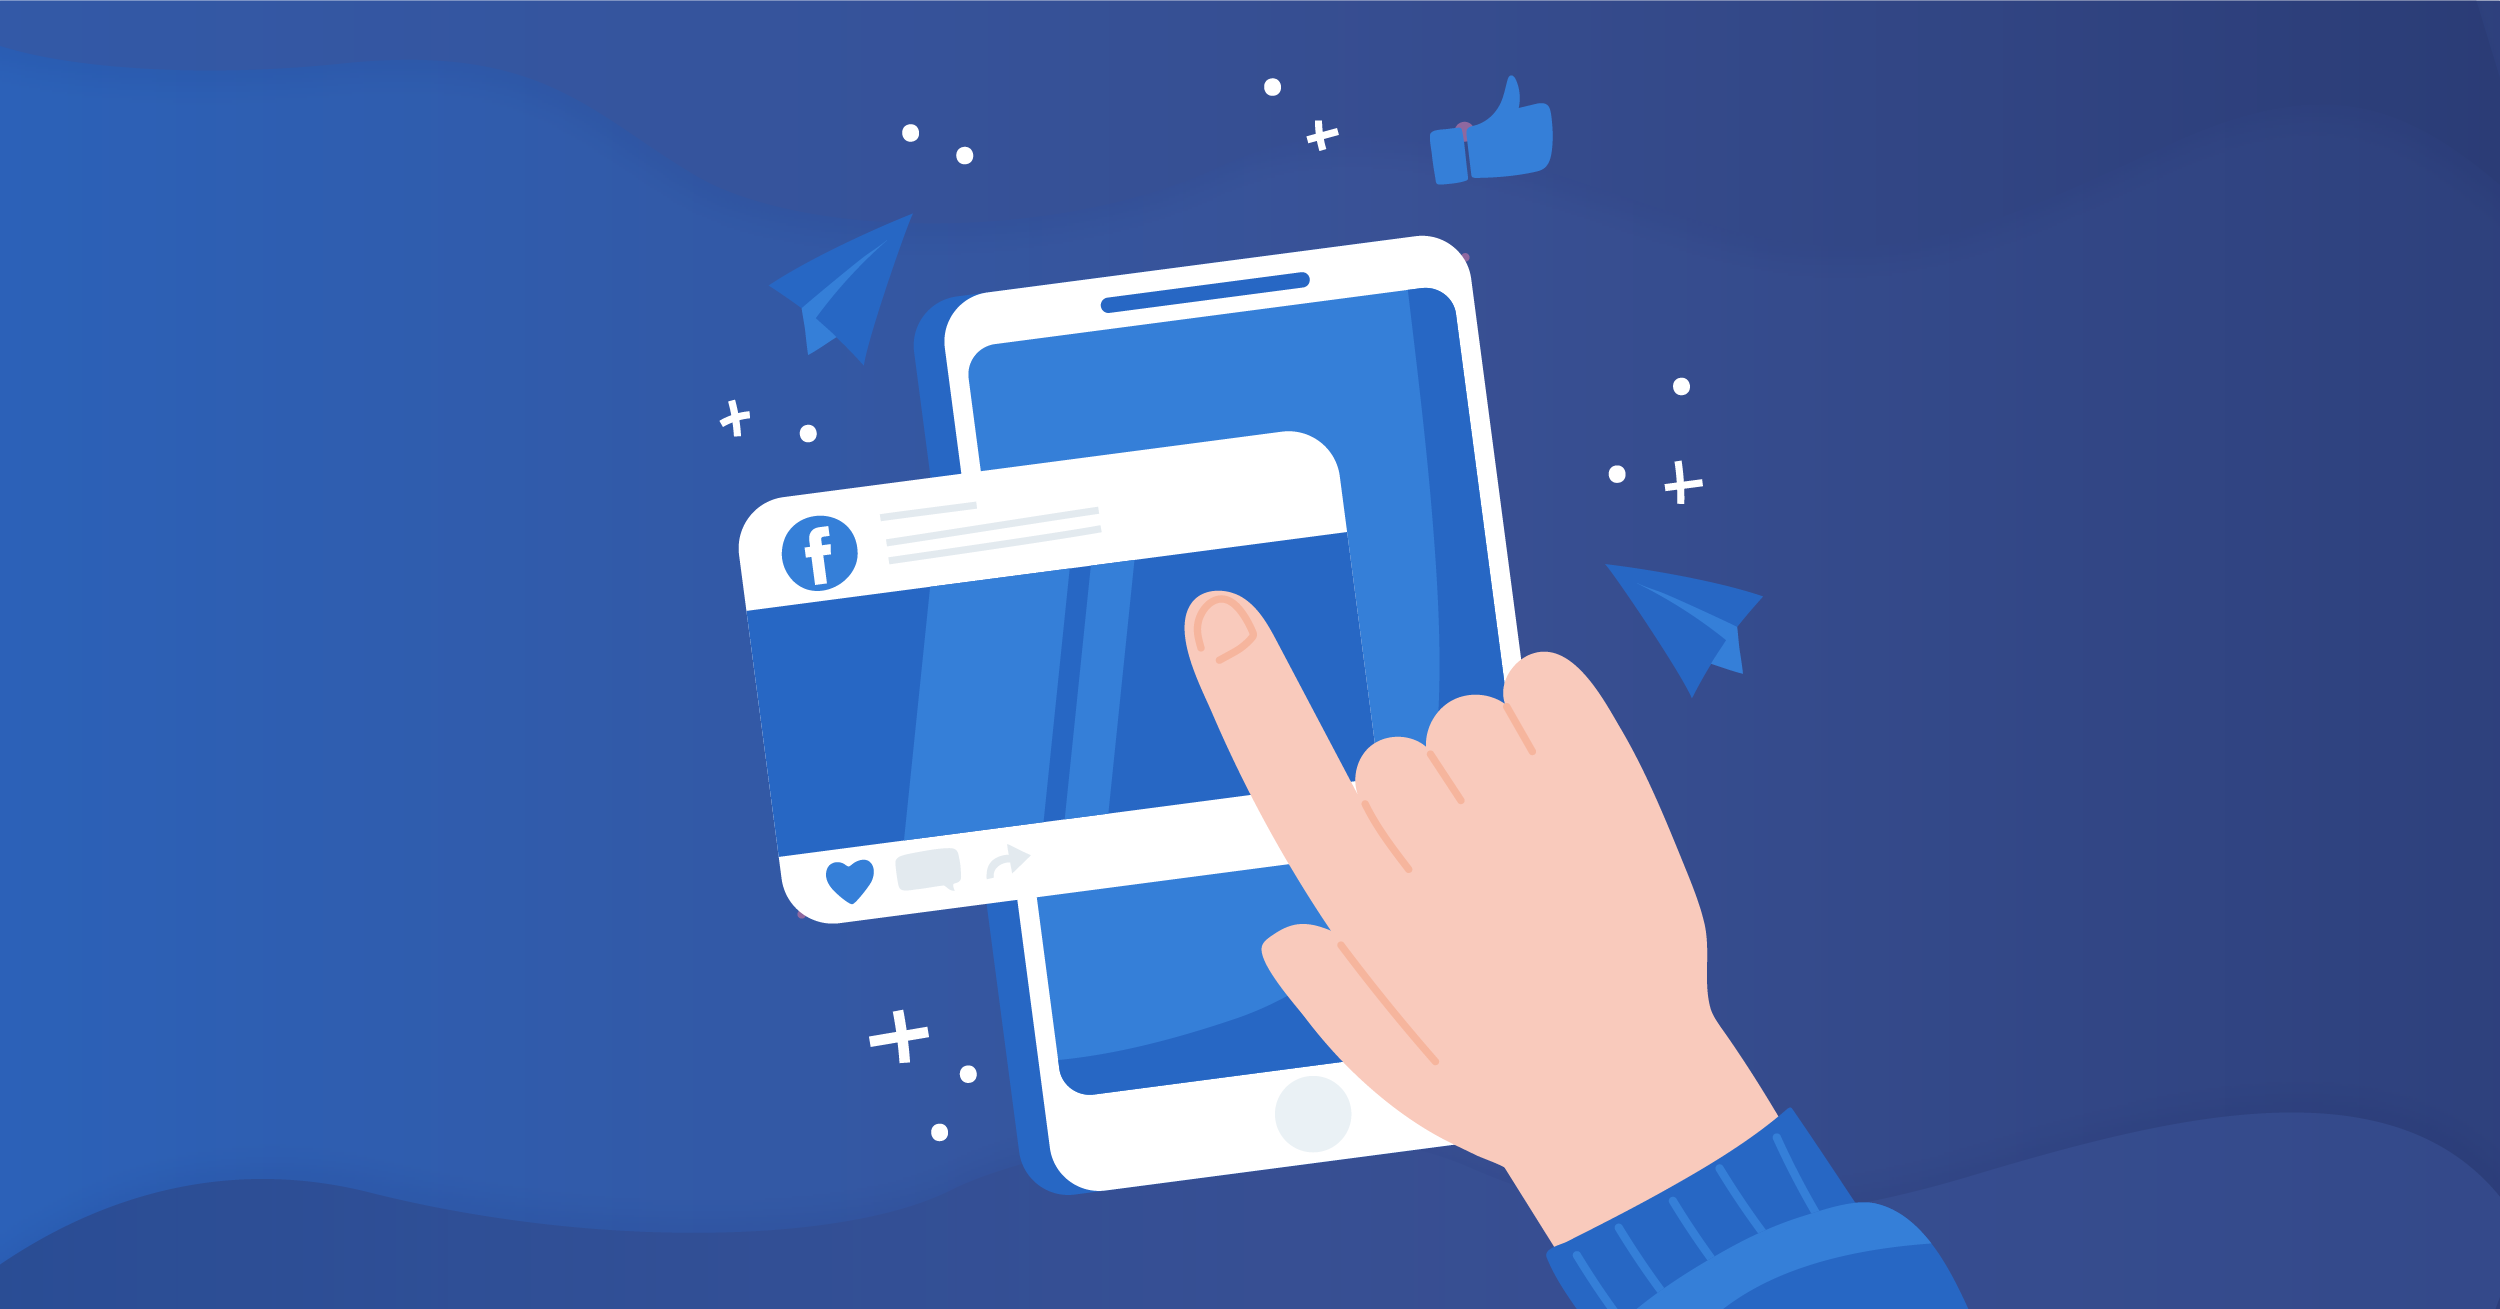 How to Design Facebook Cover Image- 7 Best Practices to Follow